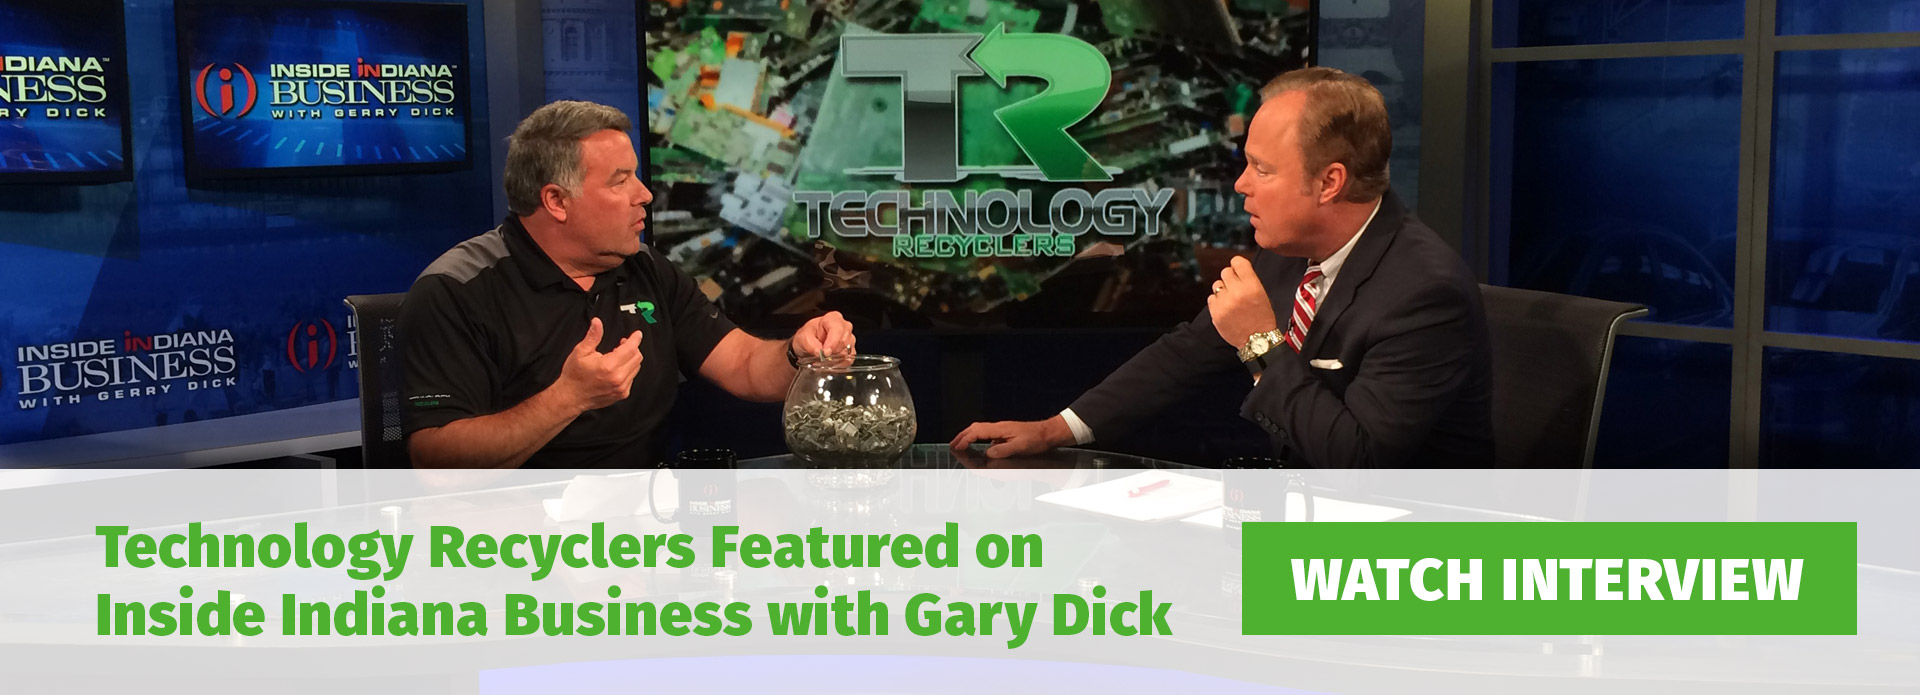 Inside-Indiana-Business-with-Gary-Dick-and-Dale-Needleman-Slider2